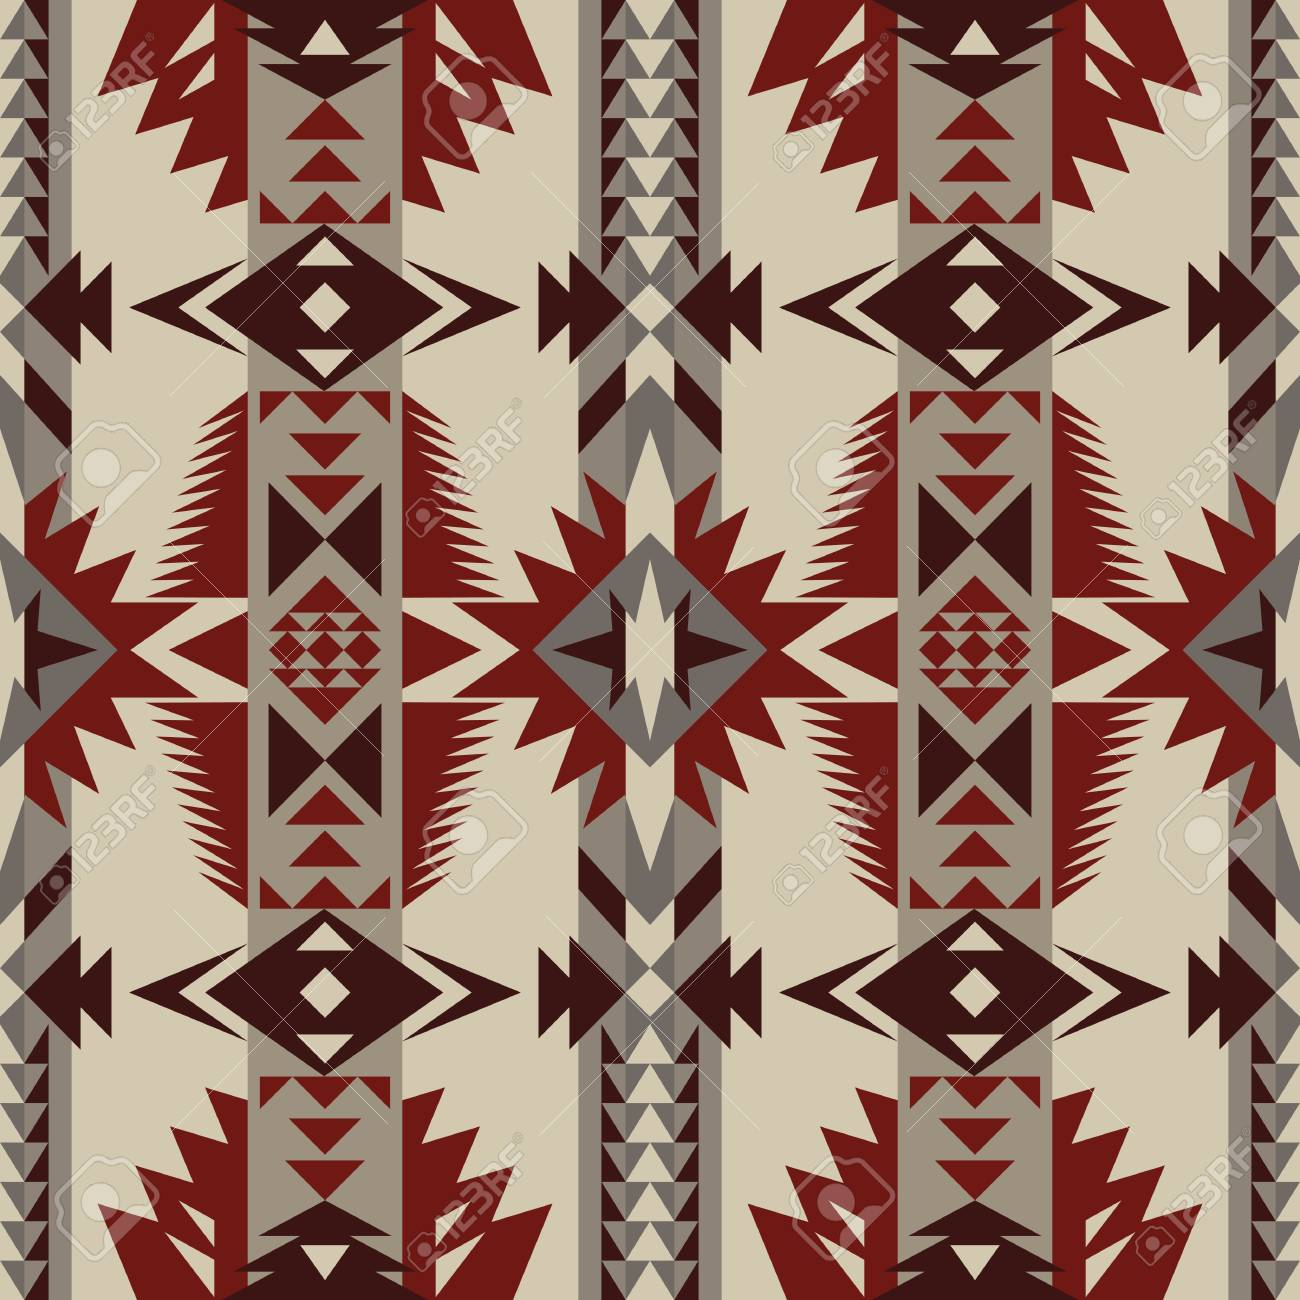 Aztec Geometric Seamless Pattern Native American Indian Southwest Print Ethnic Design Wallpaper Fabric Cover Textile Rug Blanket